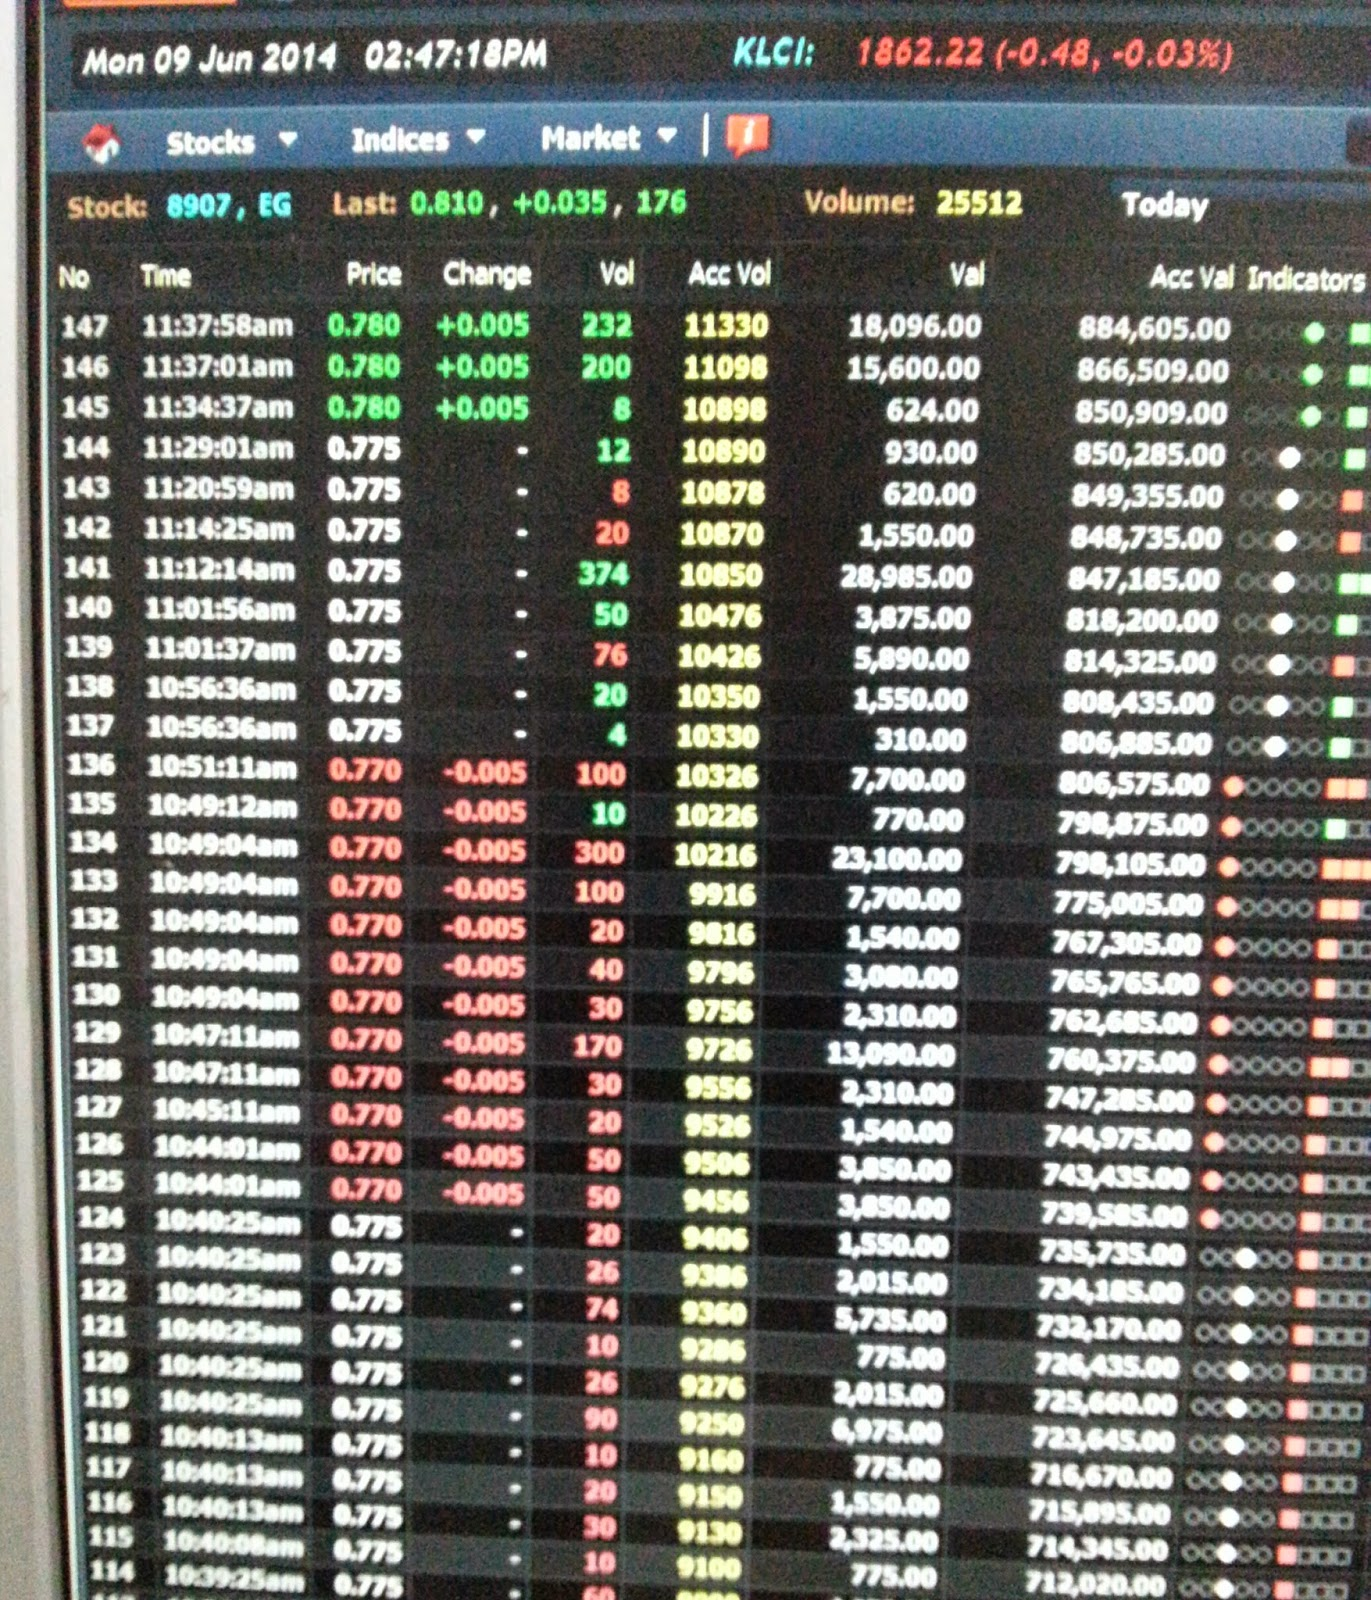 Intraday futures trading strategy